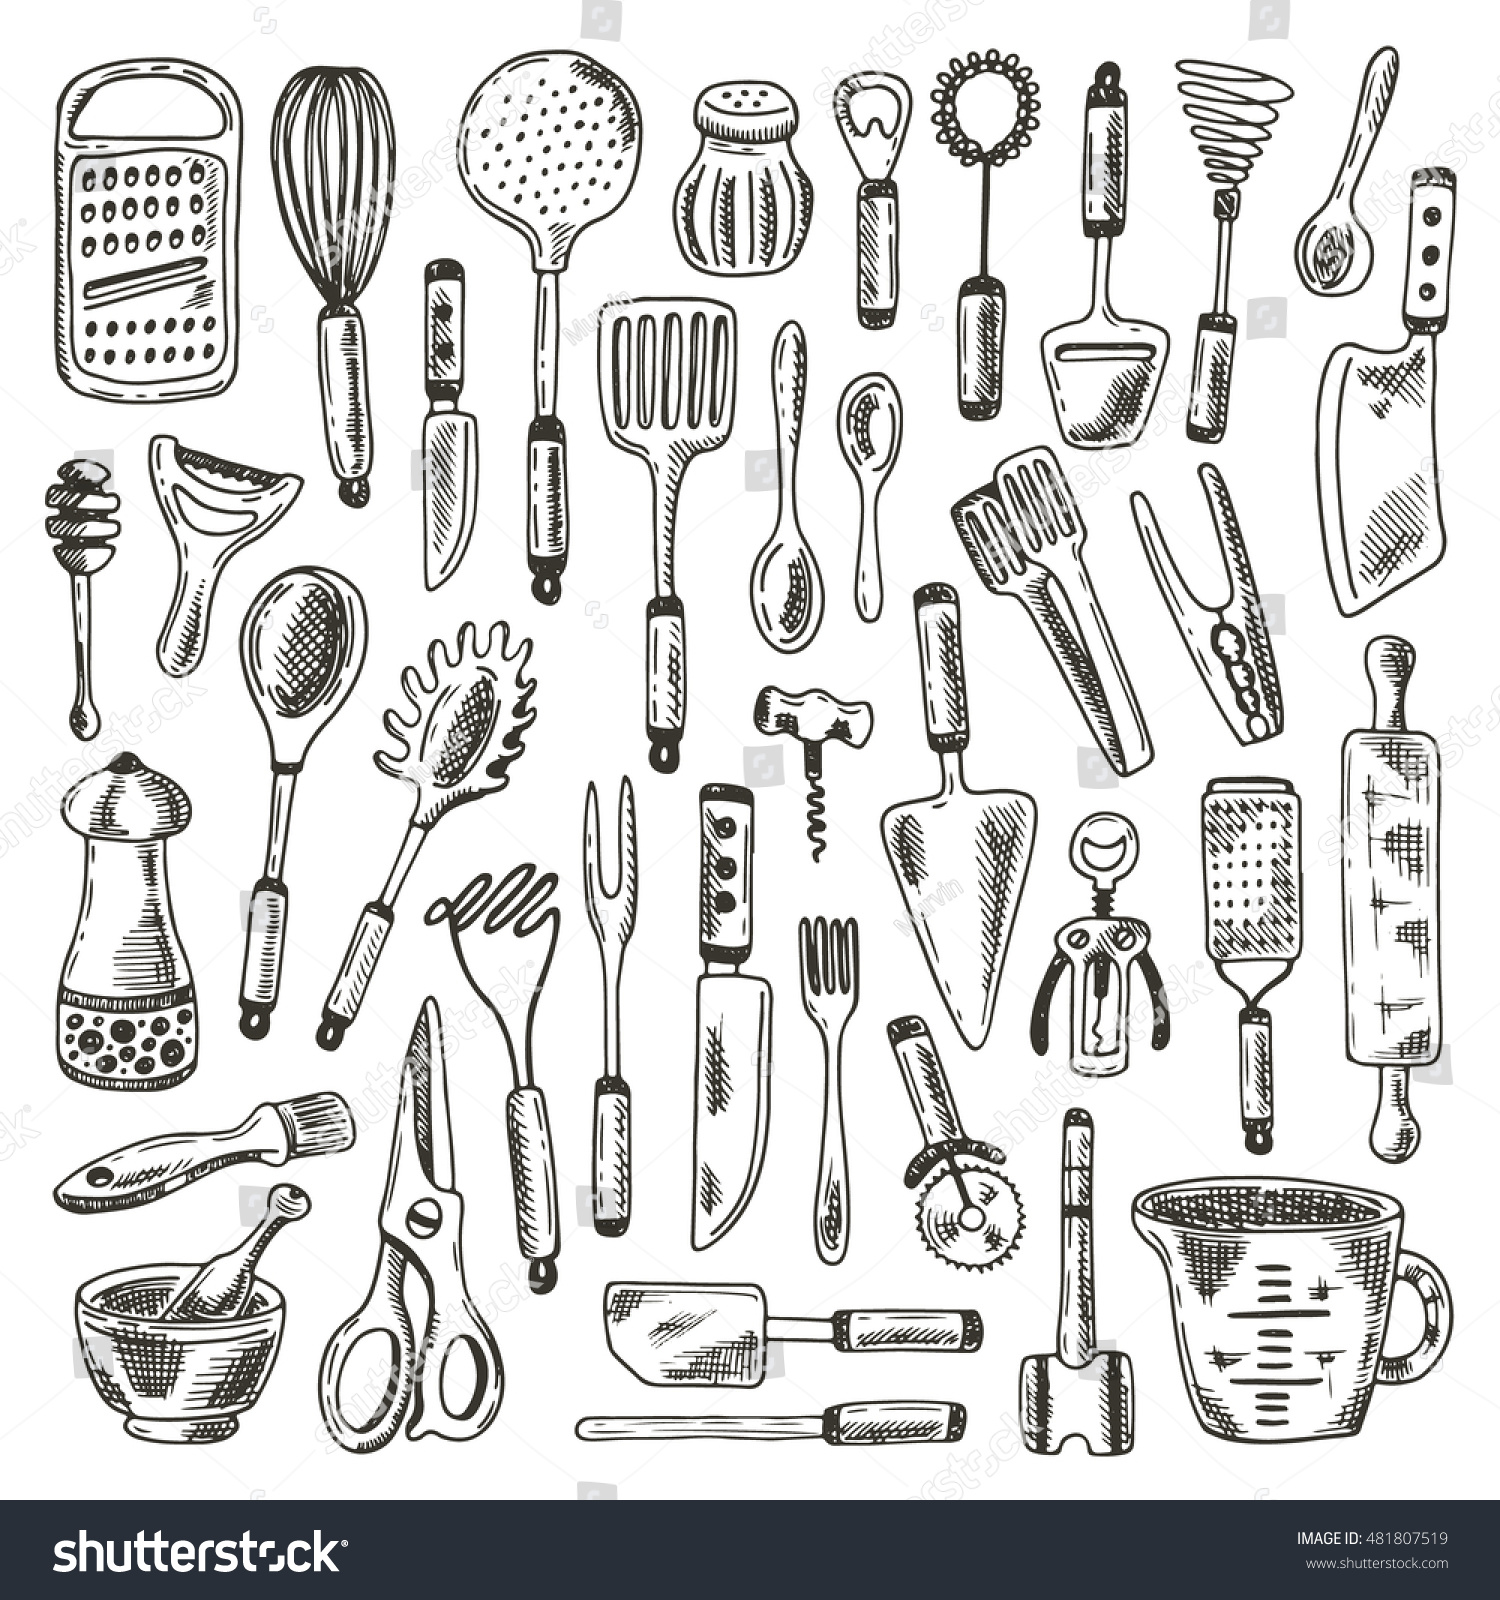 Awesome Kitchen Supplies Set. Hand Drawn Vector Illustration. Peeler, Grater,  Spoon, Corkscrew